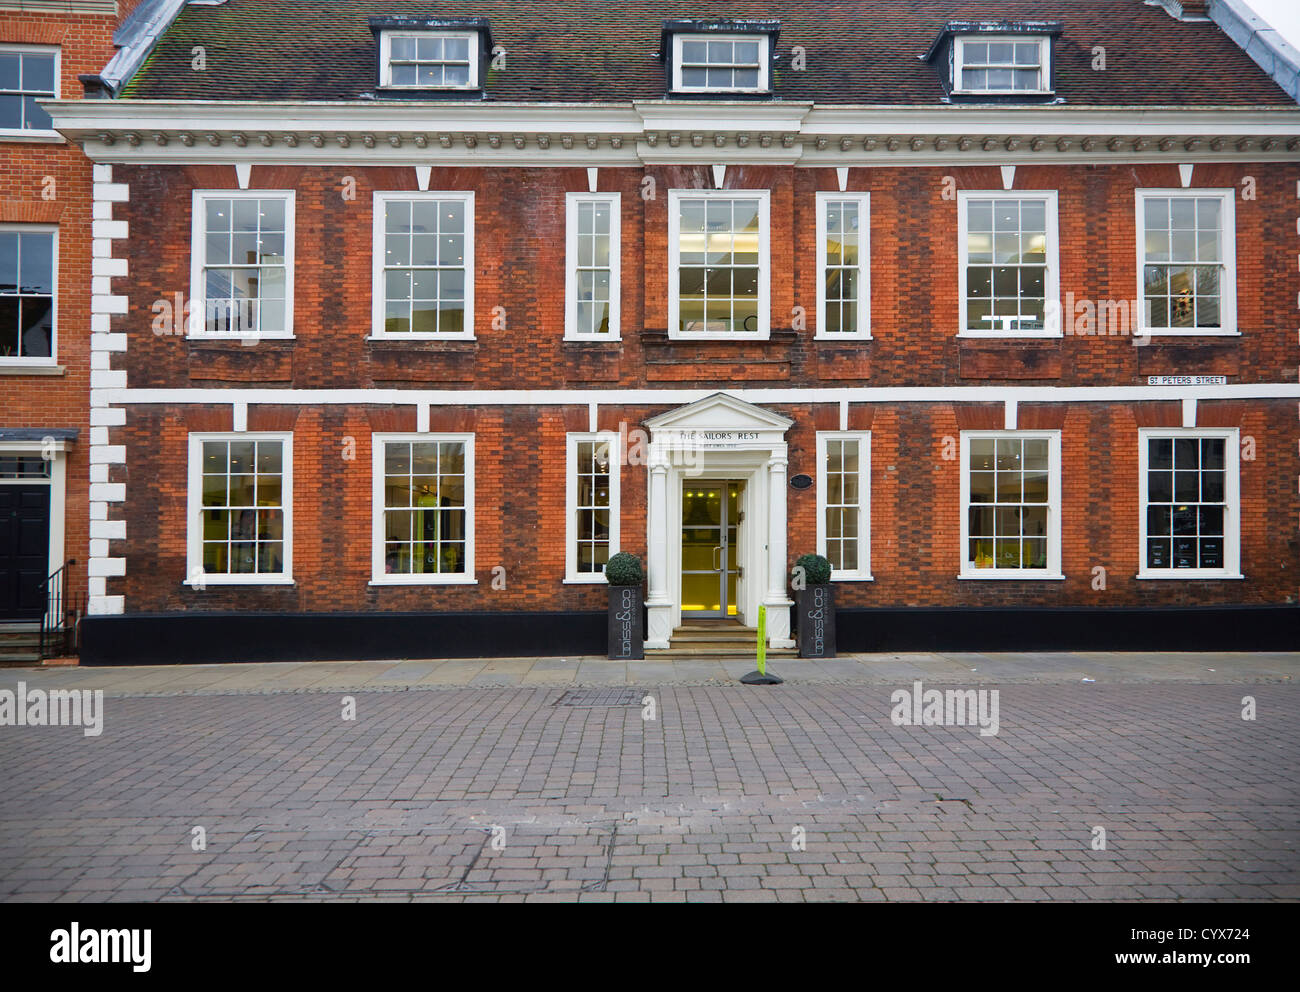 The Sailor's Home building Ipswich, Suffolk, England Stock Photo